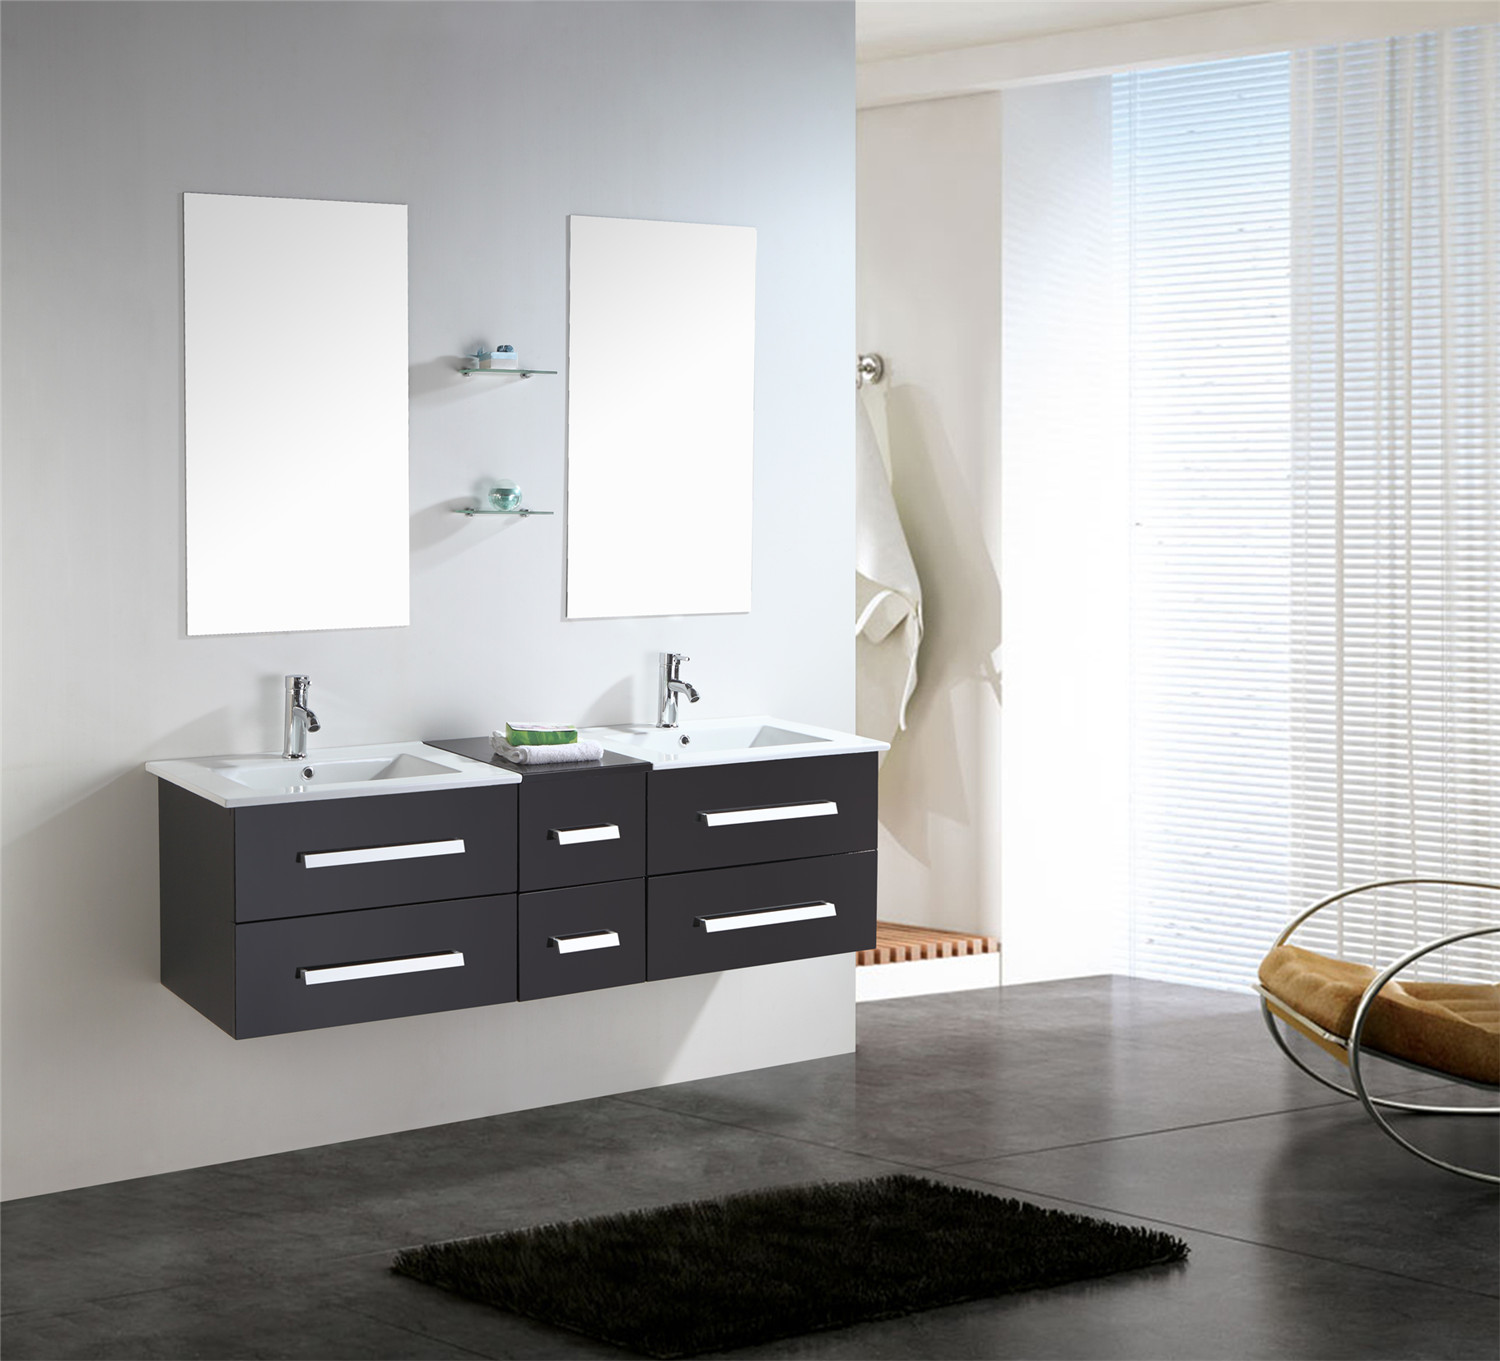 rome meuble de salle de bain 150 cm lavabo inclus simbashoppingfr. Black Bedroom Furniture Sets. Home Design Ideas